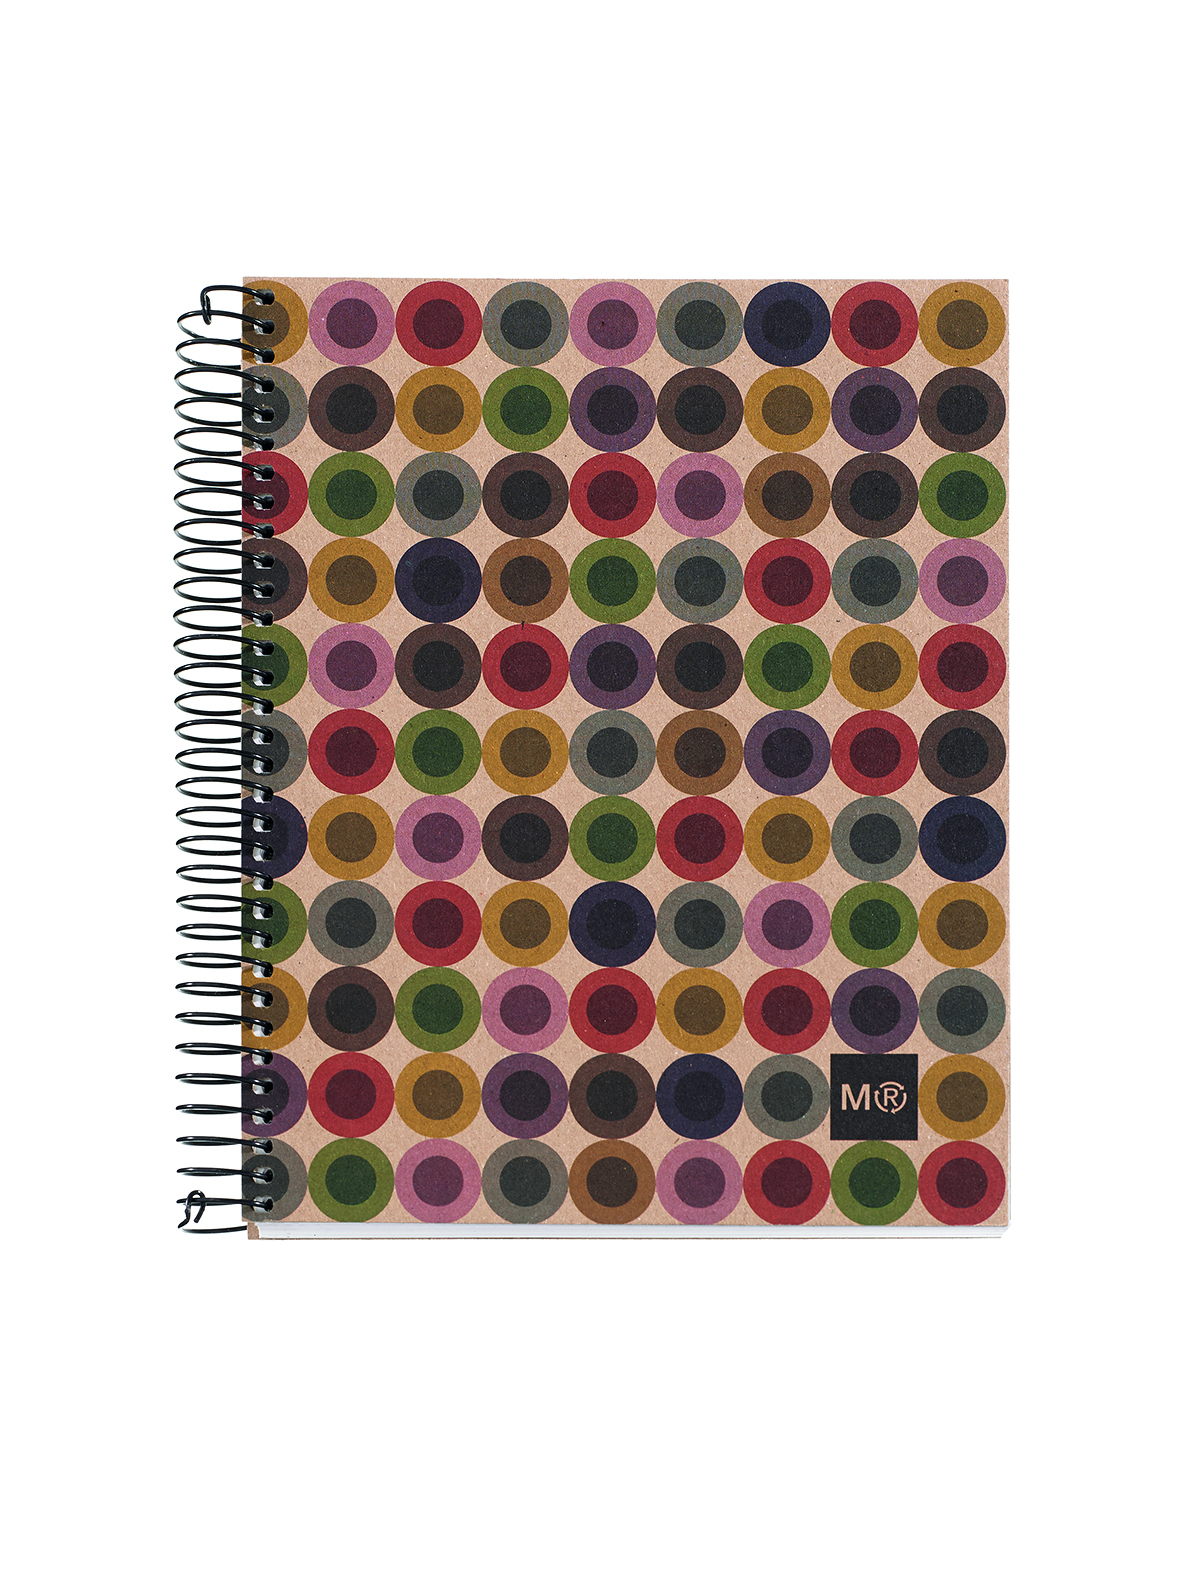 MIQUELRIUS NOTE BOOK MILQUELRIUS 100% RECYL 240PG A5 7MM RULED HARDCOVER BUTTON(PK5)